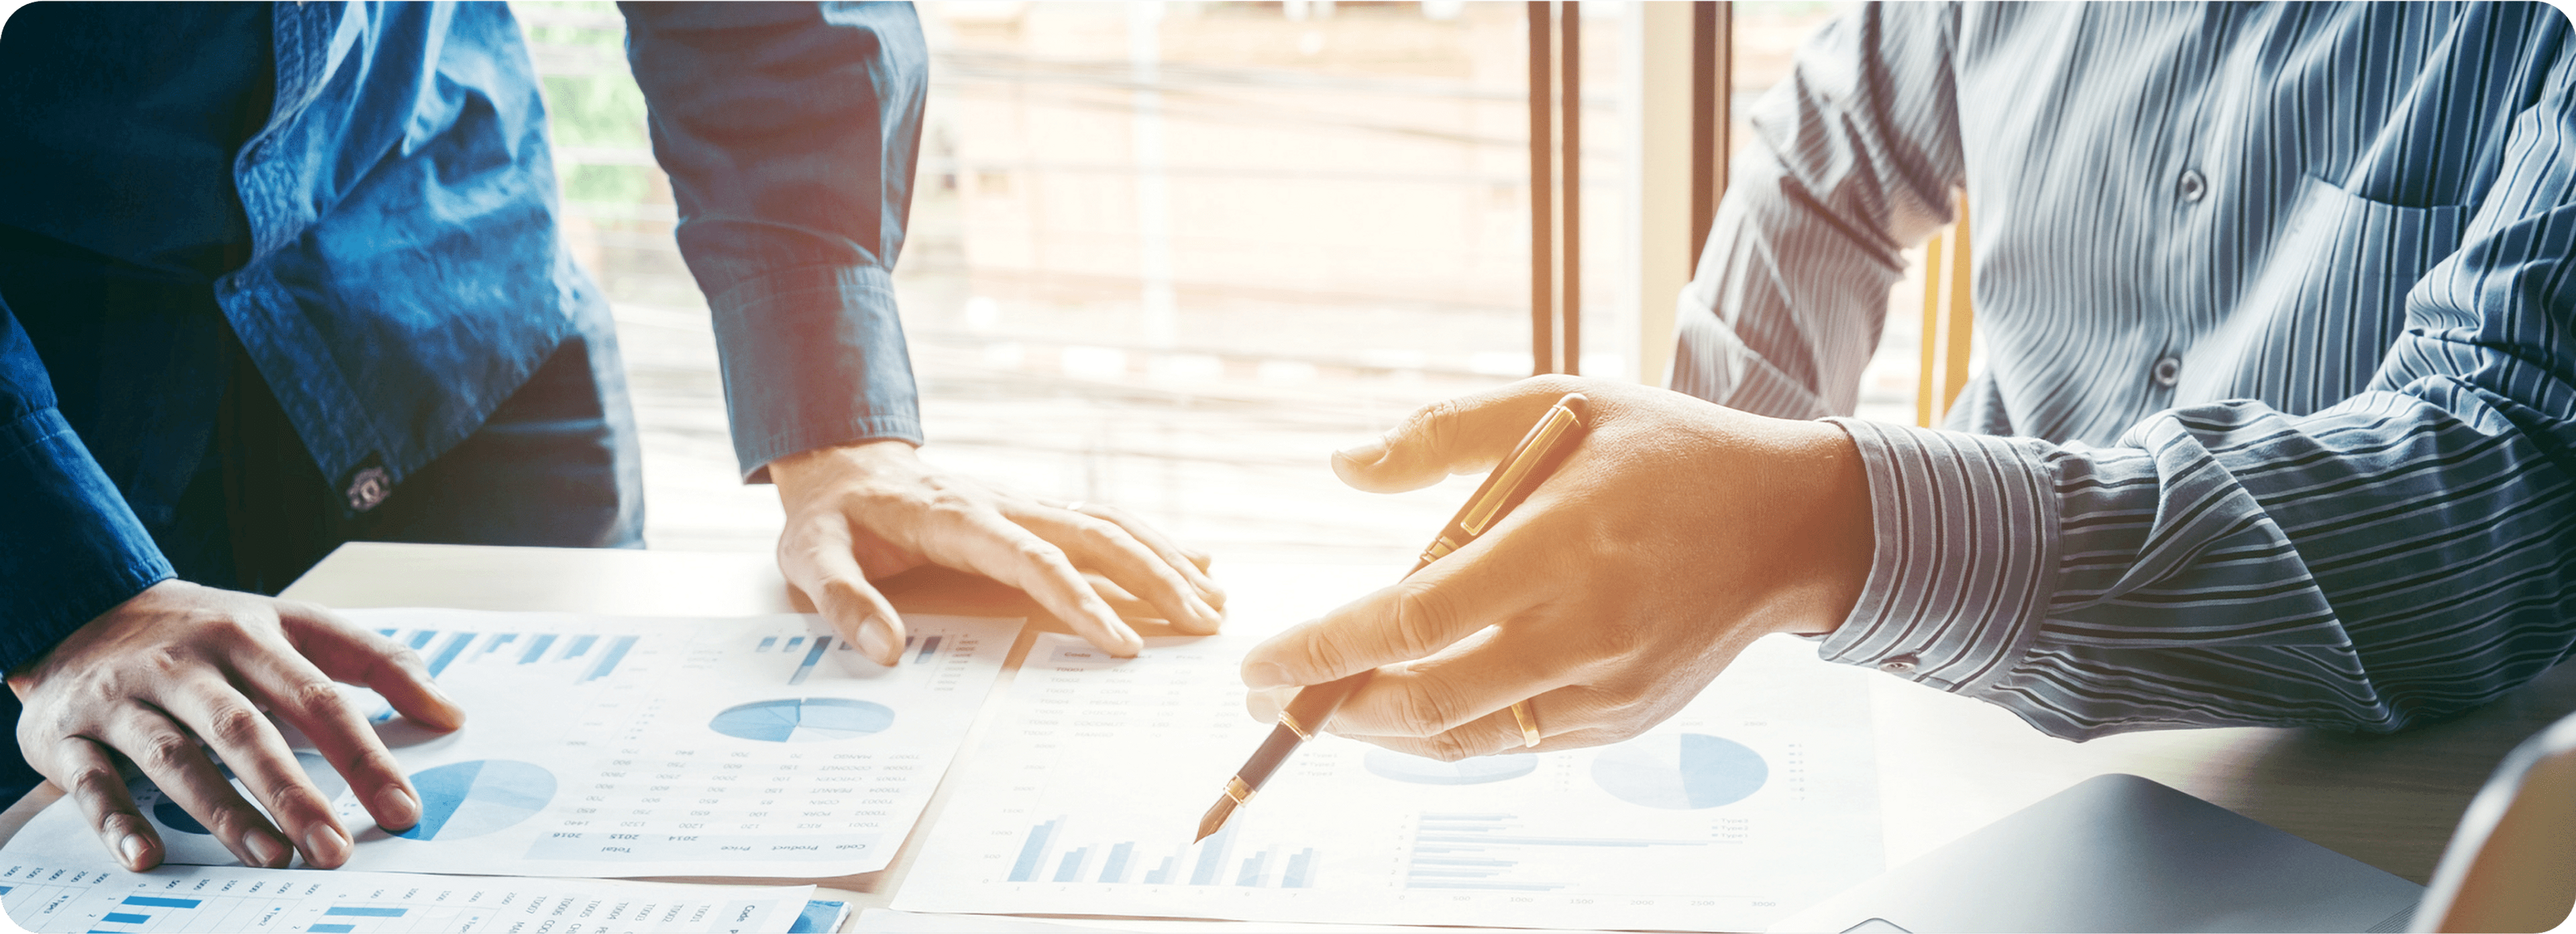 Picture of a business woman and man 's hands holding a pen and discussing  data charts